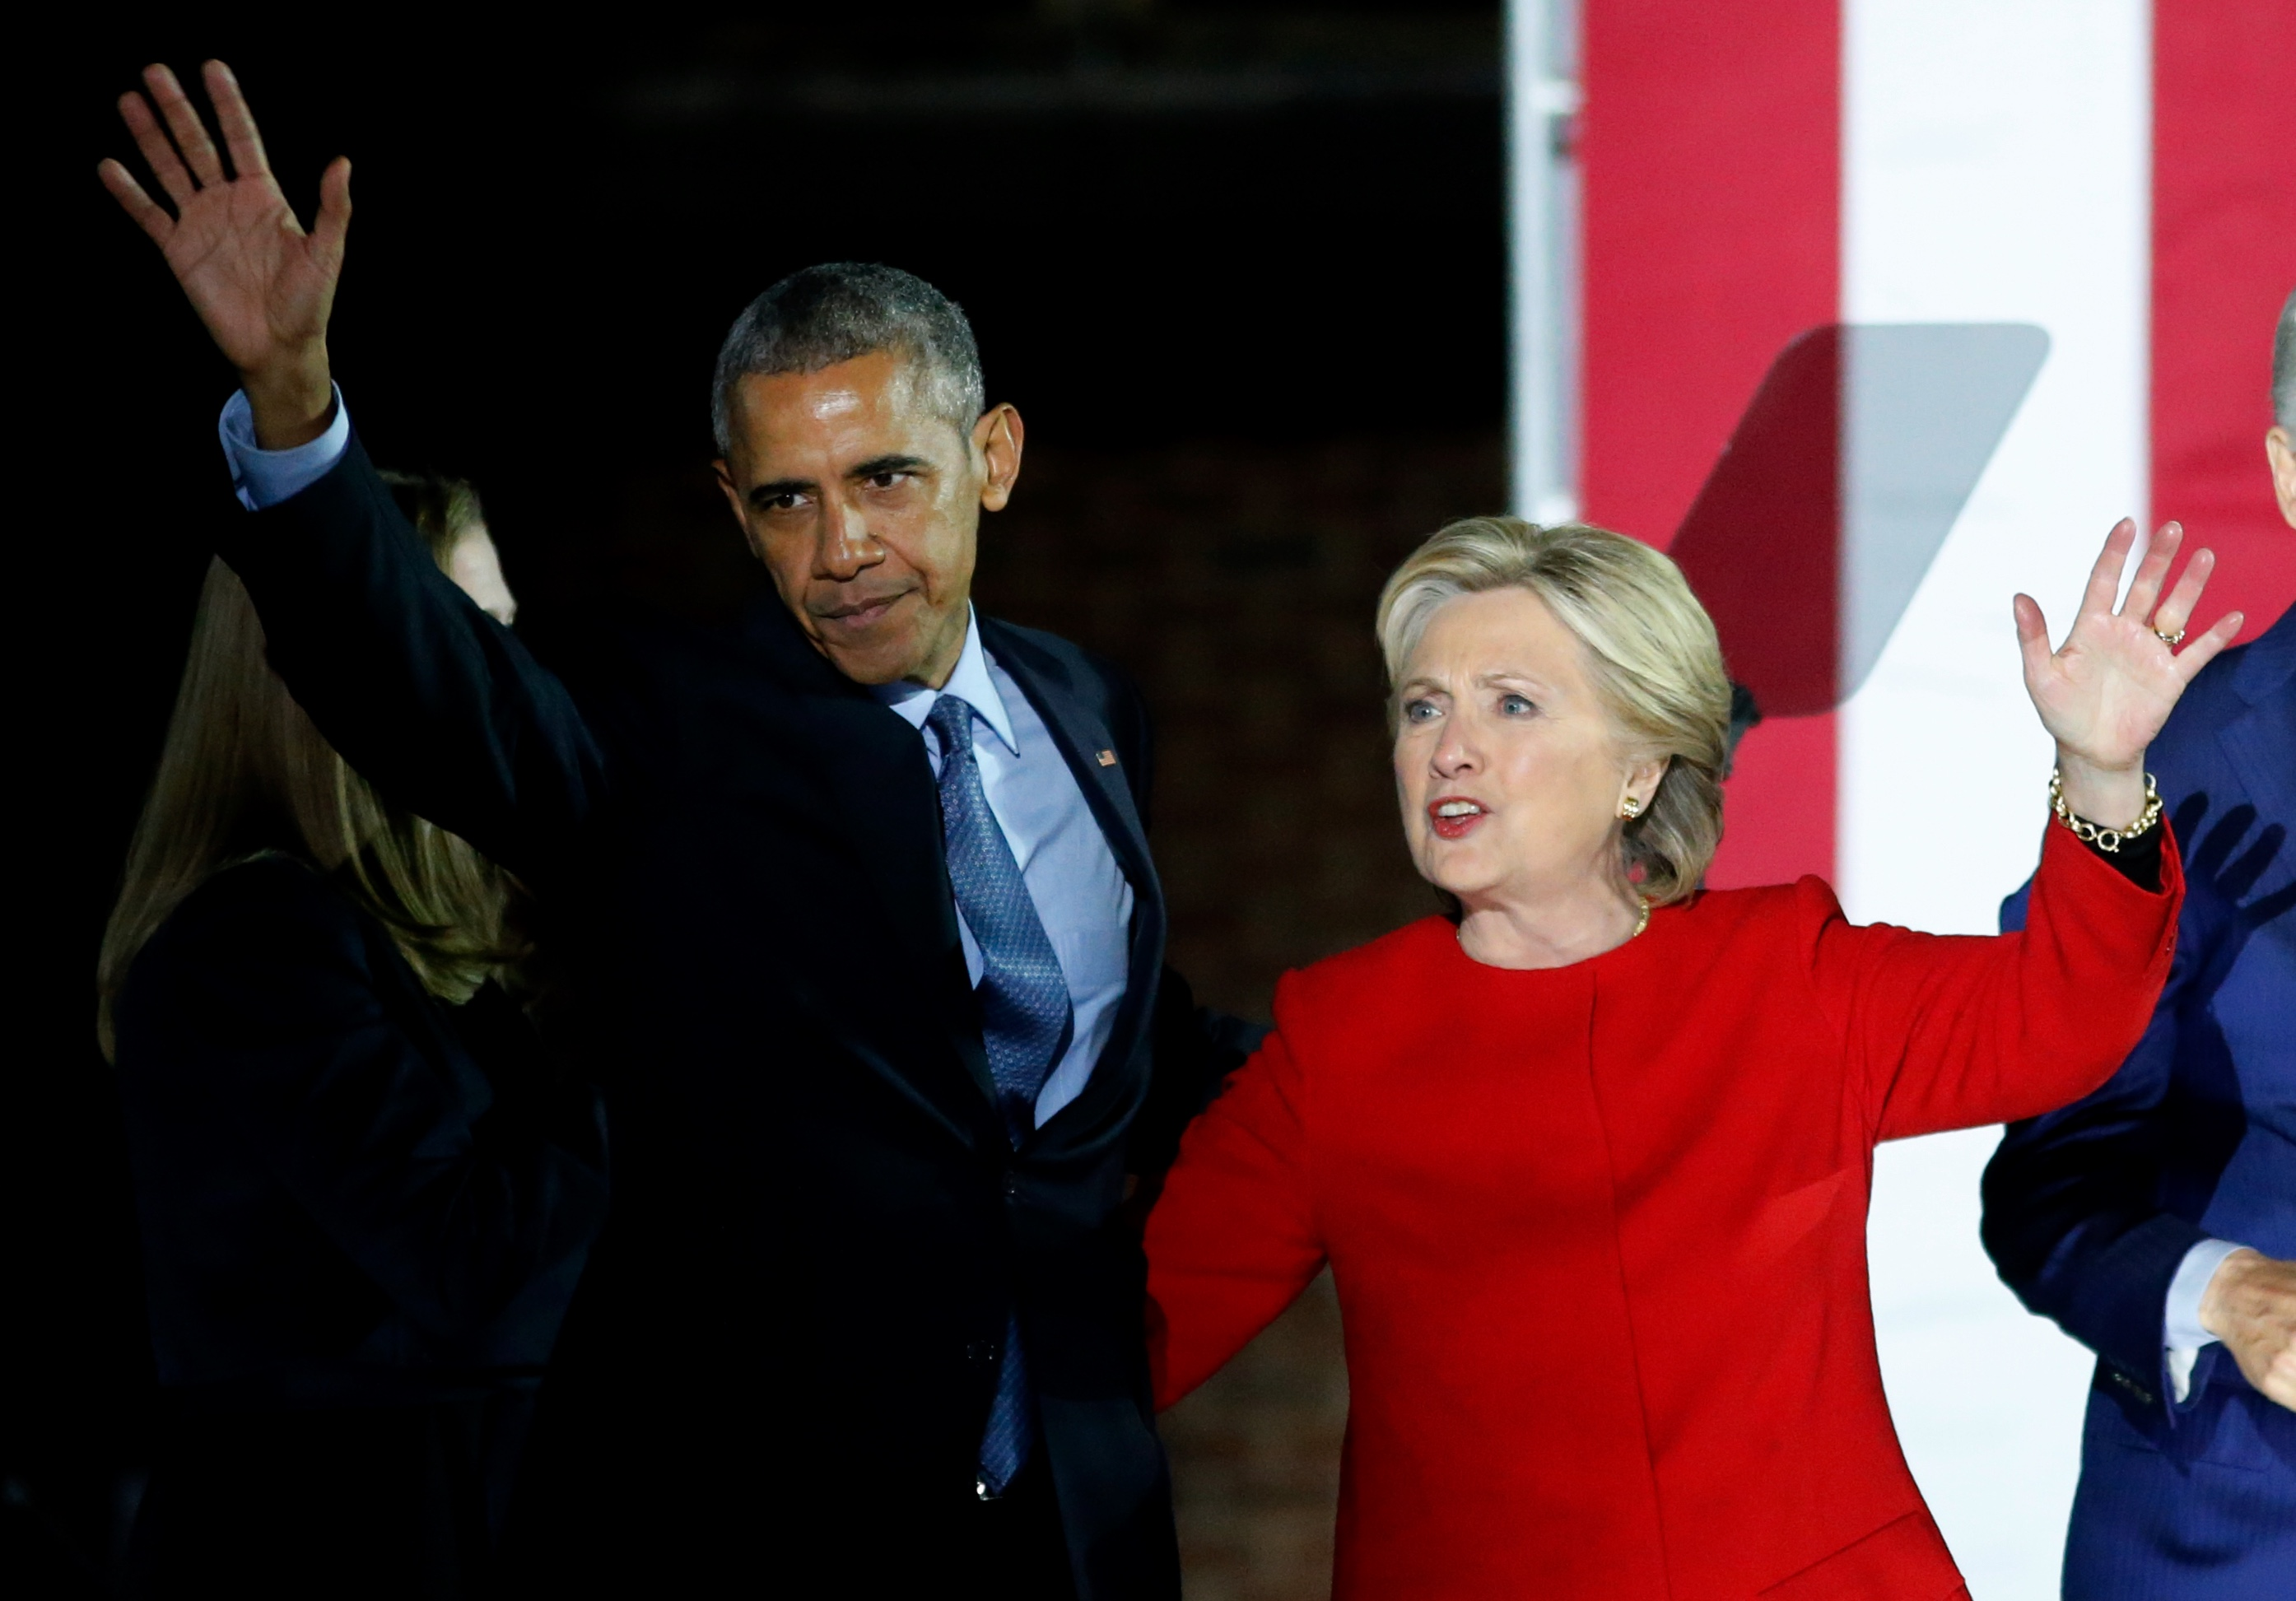 Hillary Clinton, U.S. President Barack Obama and first lady Michelle Obama during Campaign in Pennsylvania